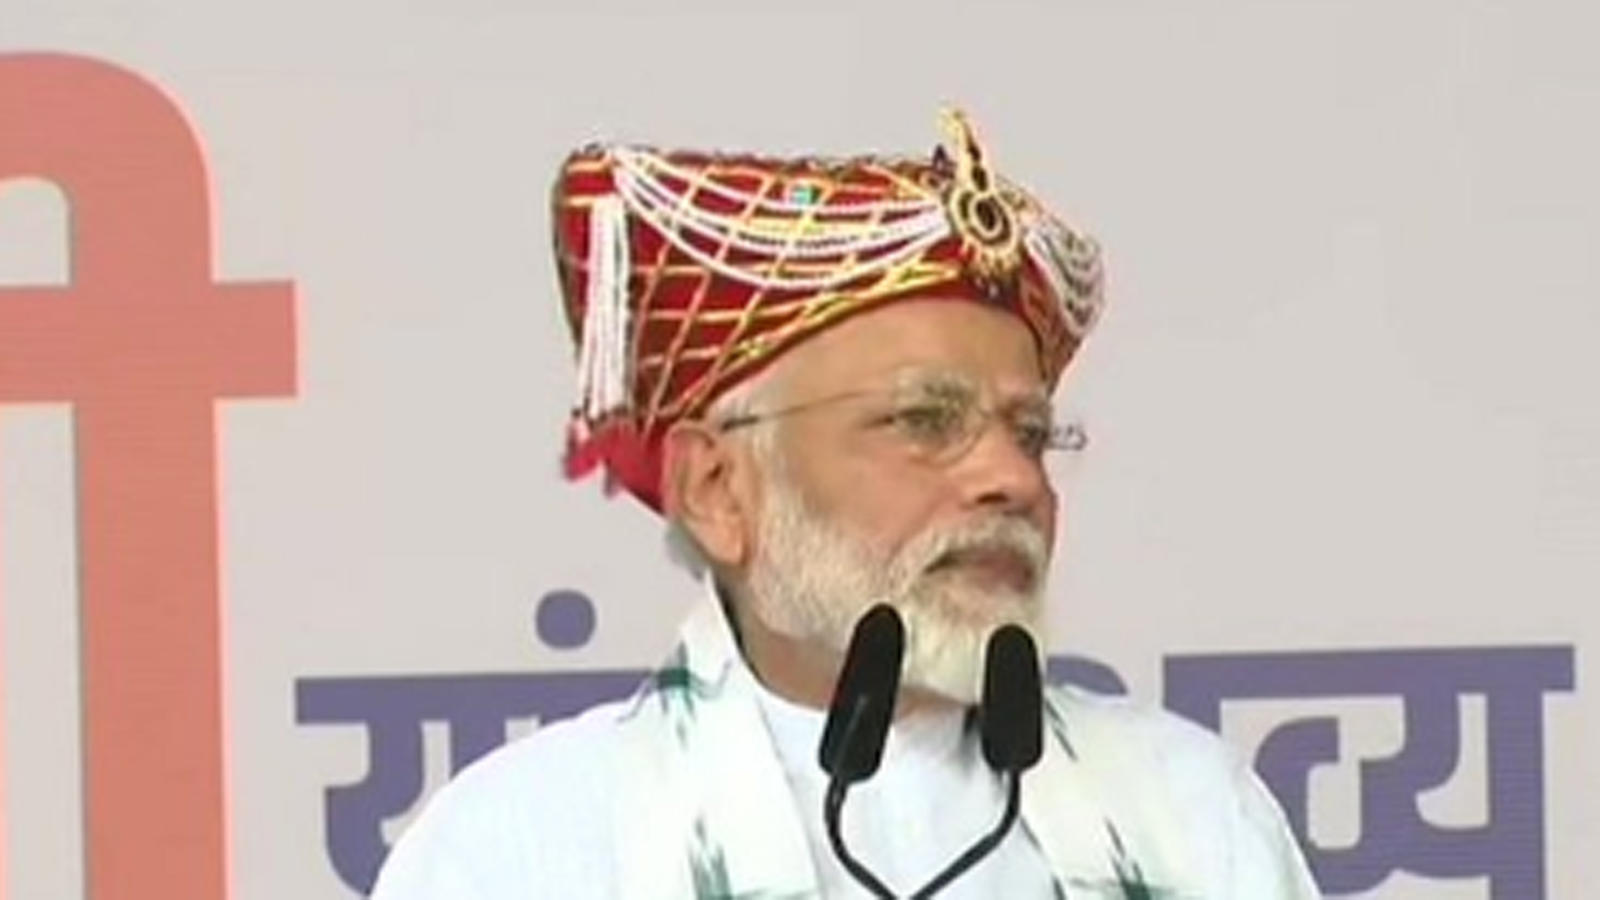 maharashtra-assembly-polls-2019-our-govt-is-committed-to-nations-security-says-pm-narendra-modi